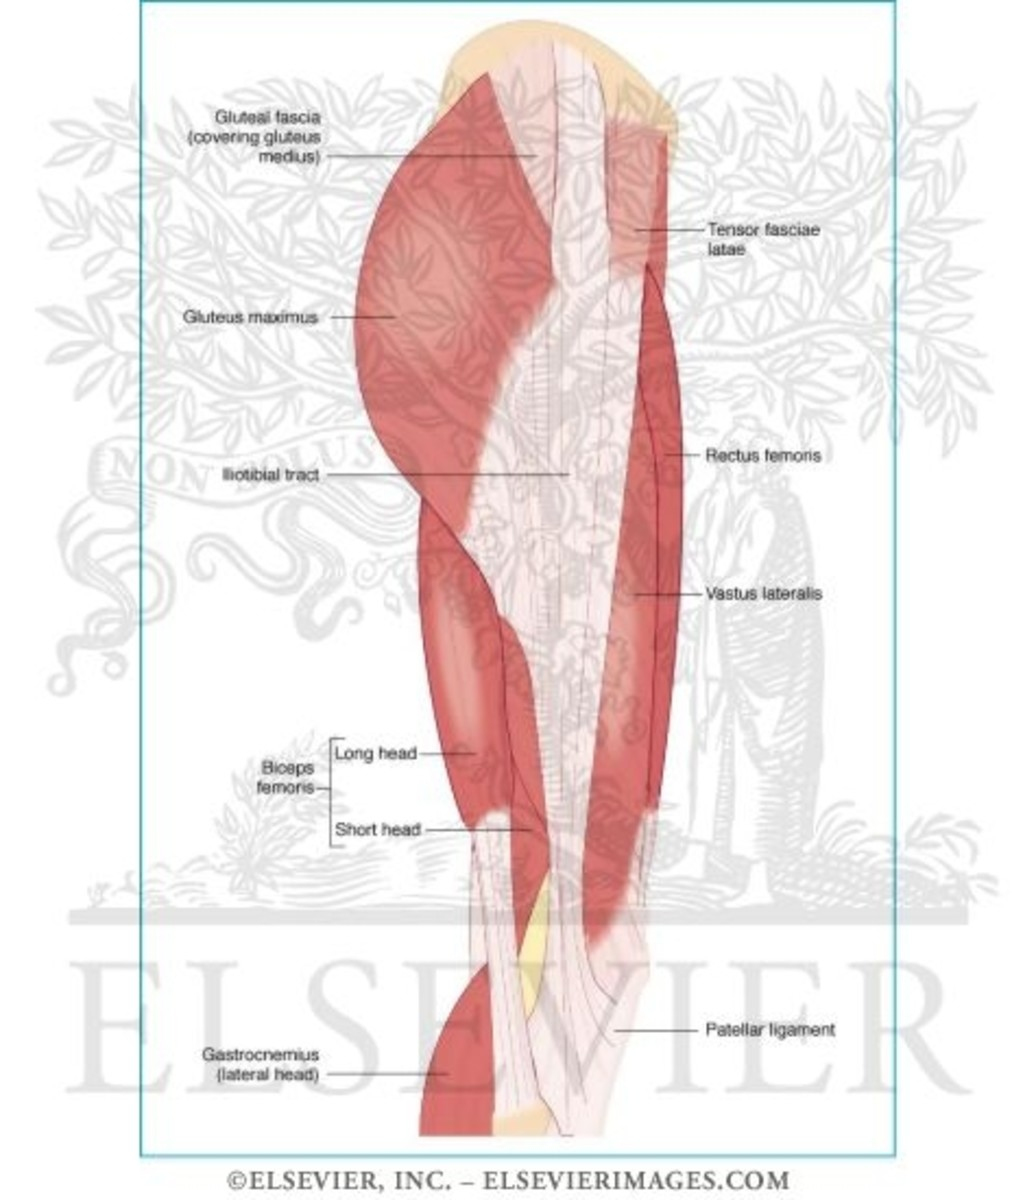 Some of the muscle groups worked during P90X: Legs and Back - including the biceps femoris, better known as the hamstrings.